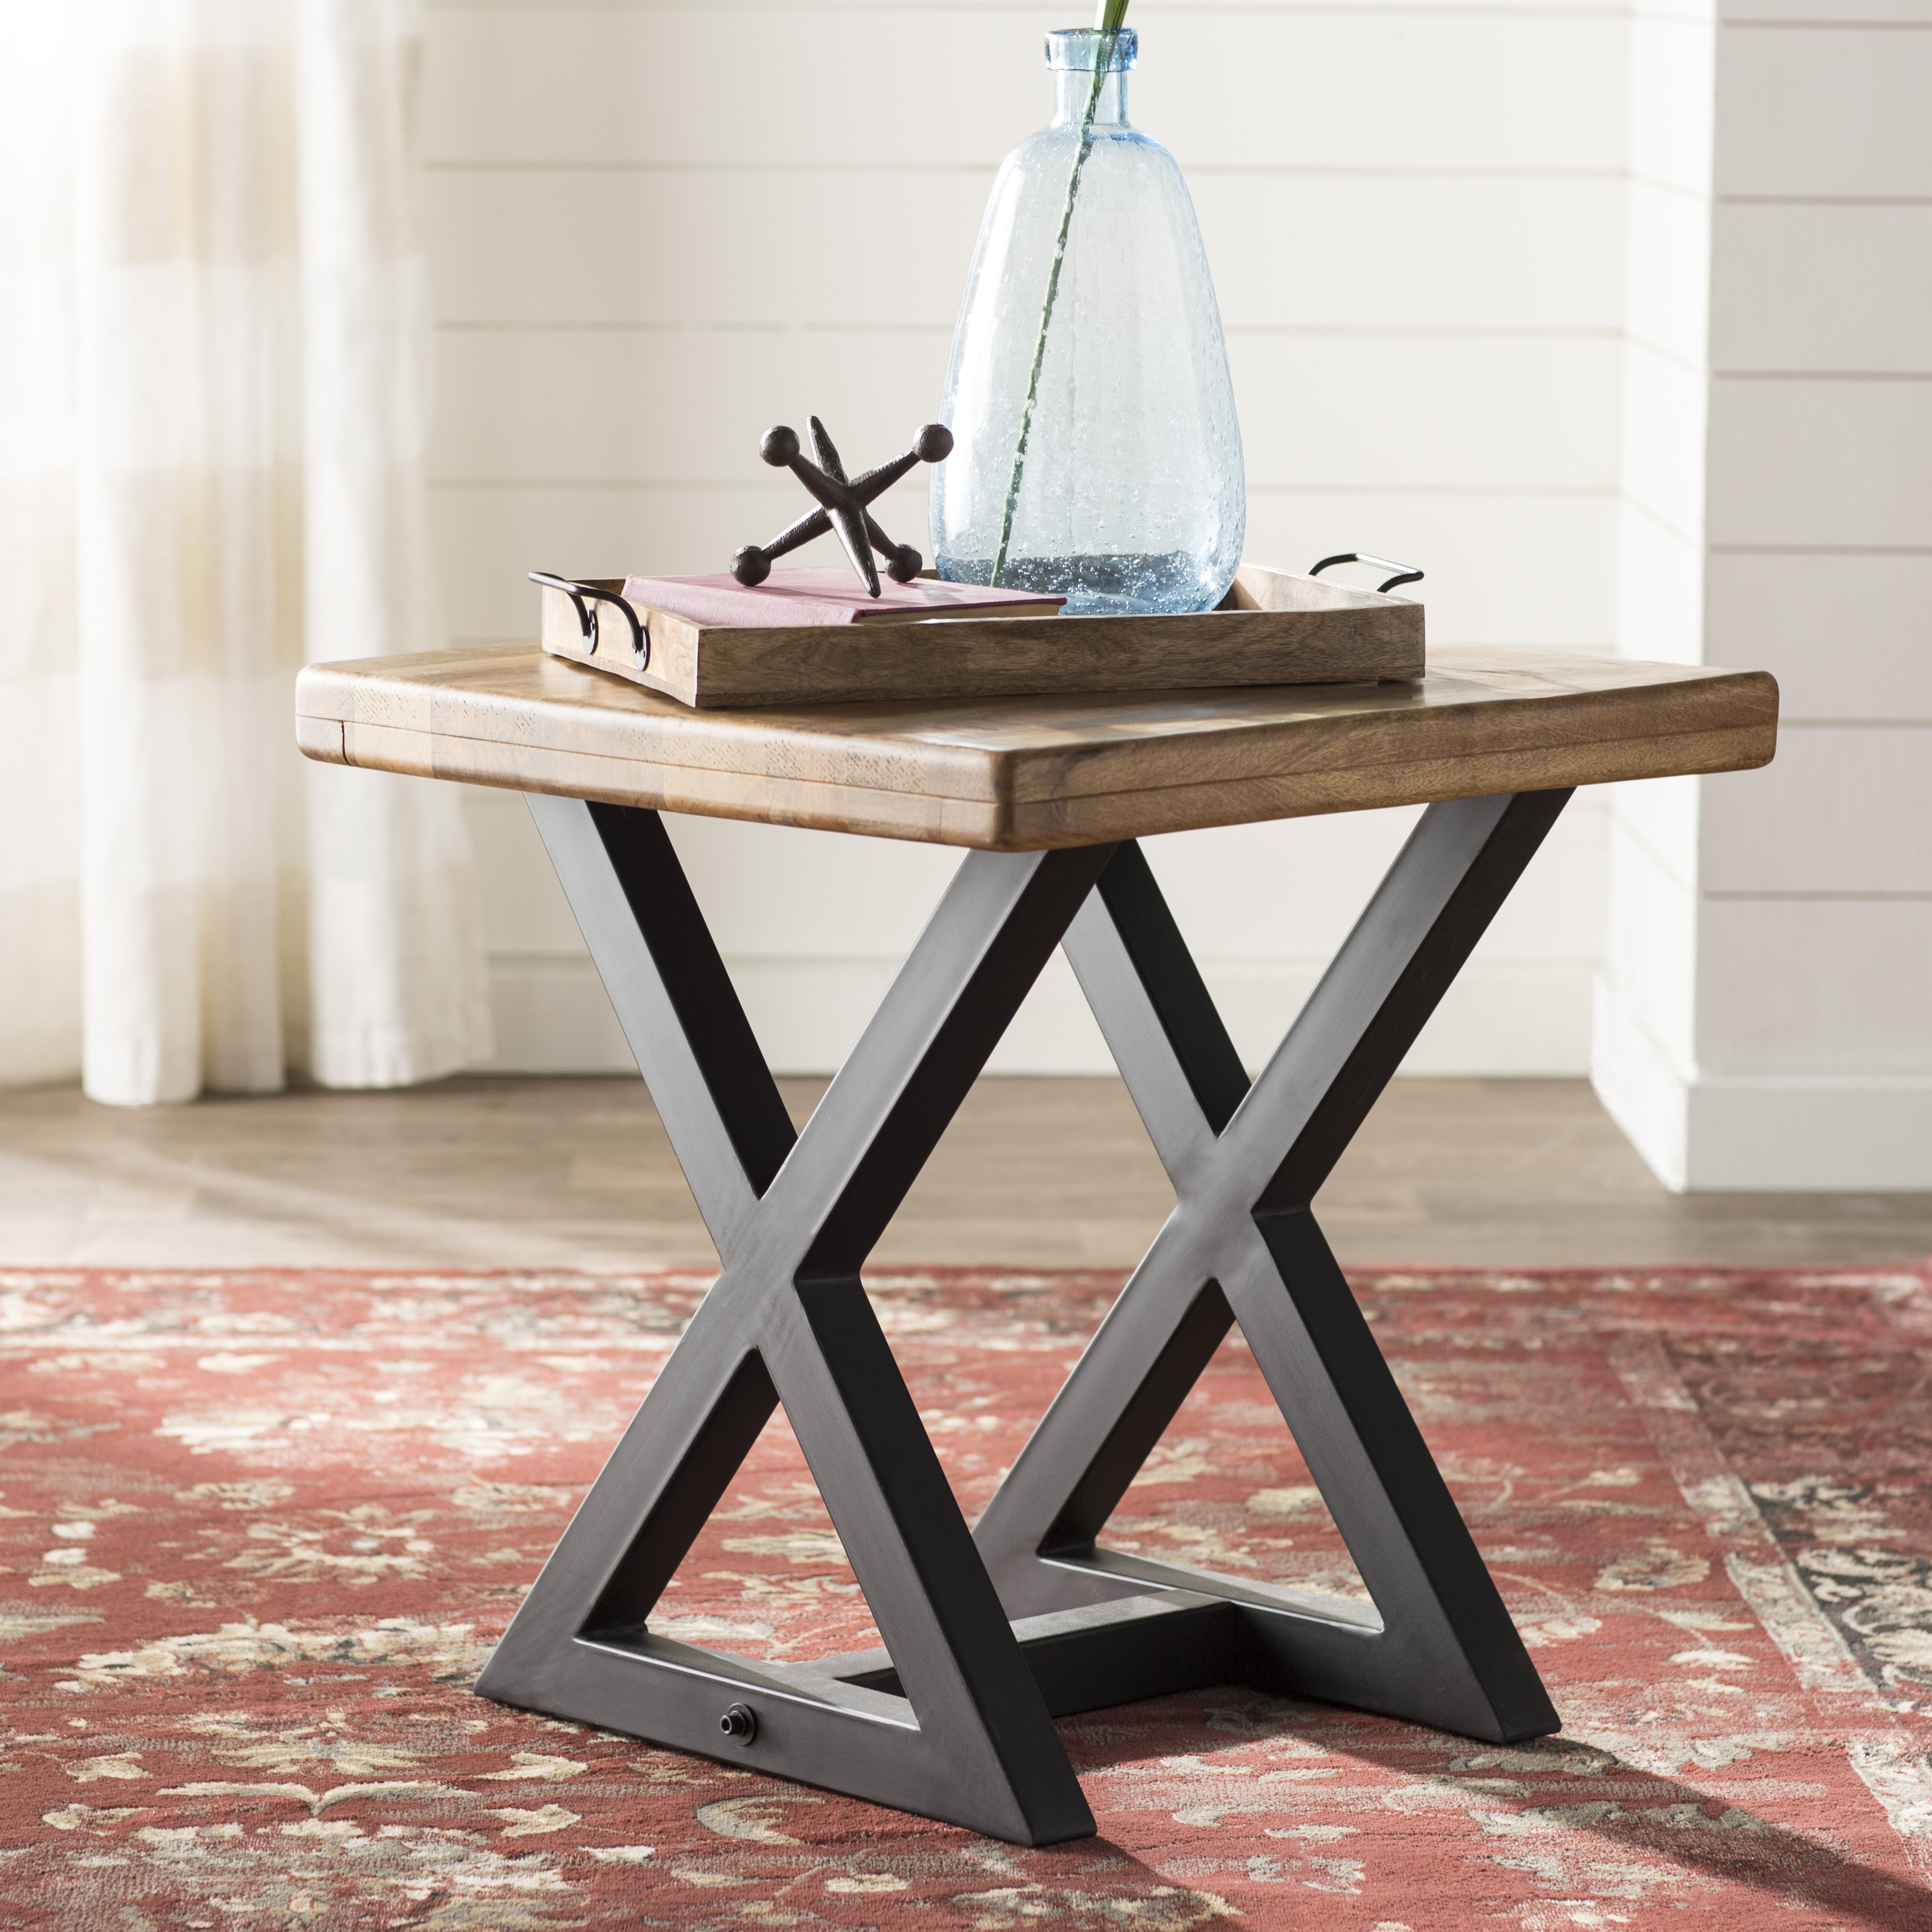 Potomac Adjustable Coffee Tables Throughout Latest Laurel Foundry Modern Farmhouse Hilltop End Table & Reviews (View 10 of 20)